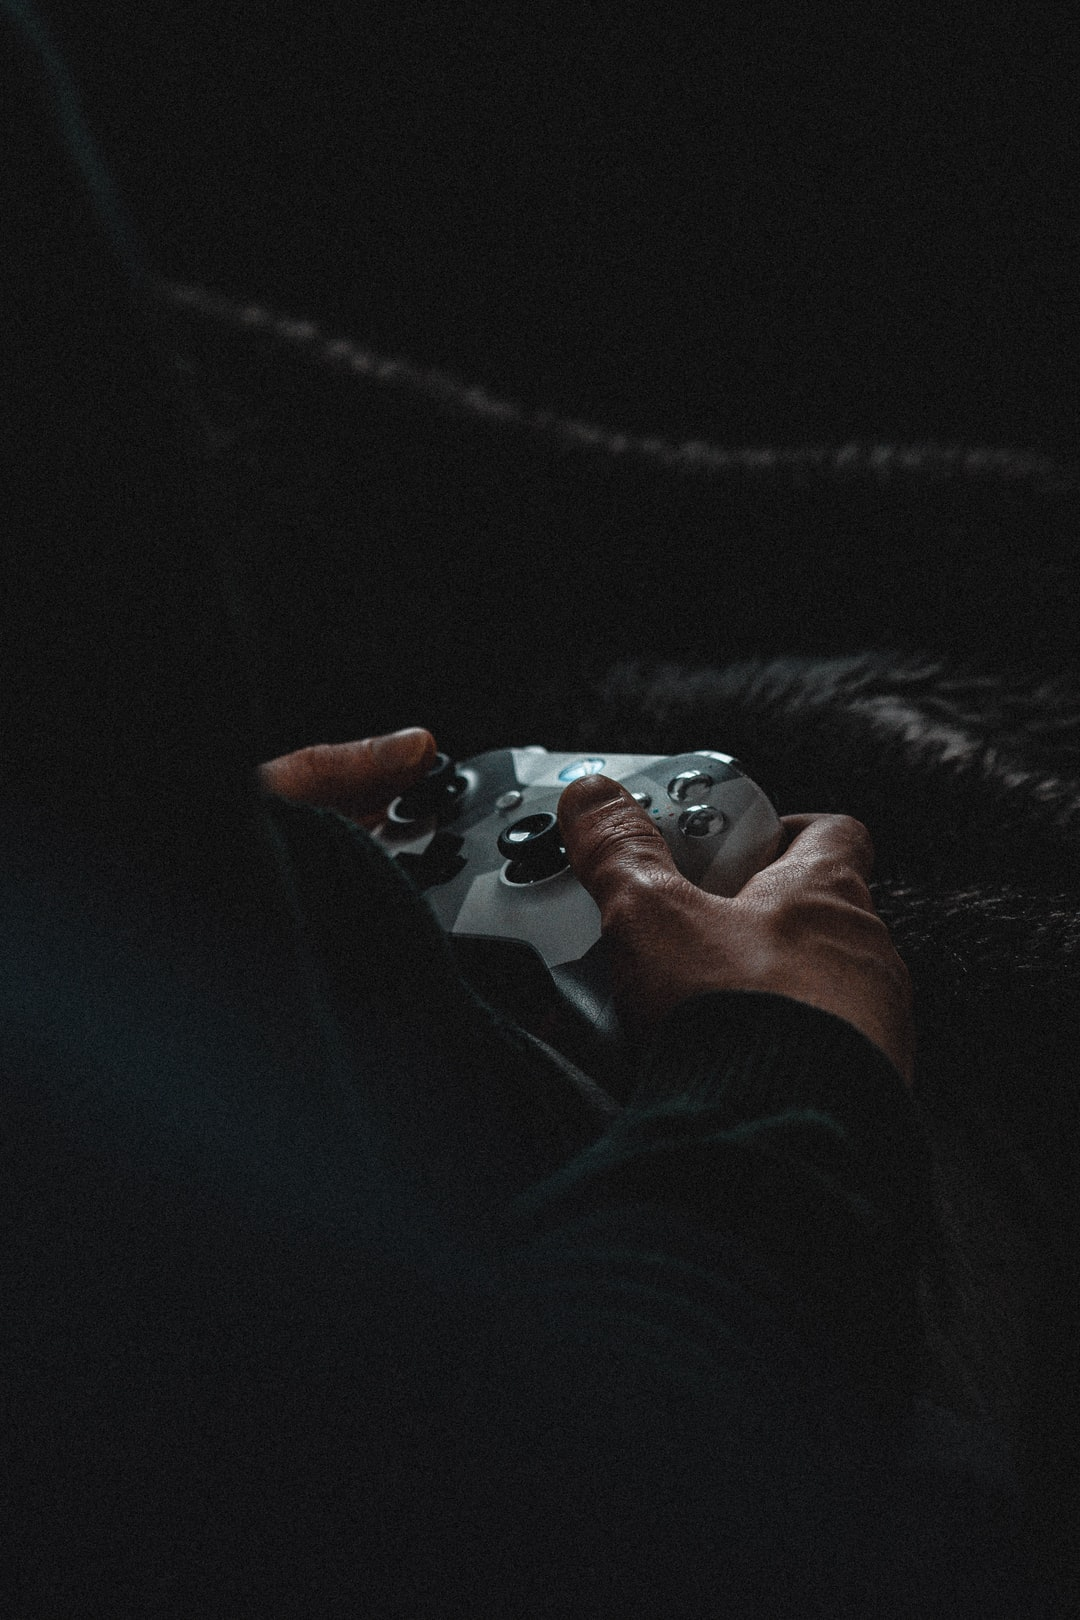 Best Gaming Accessories To Boost Your Gaming Skills